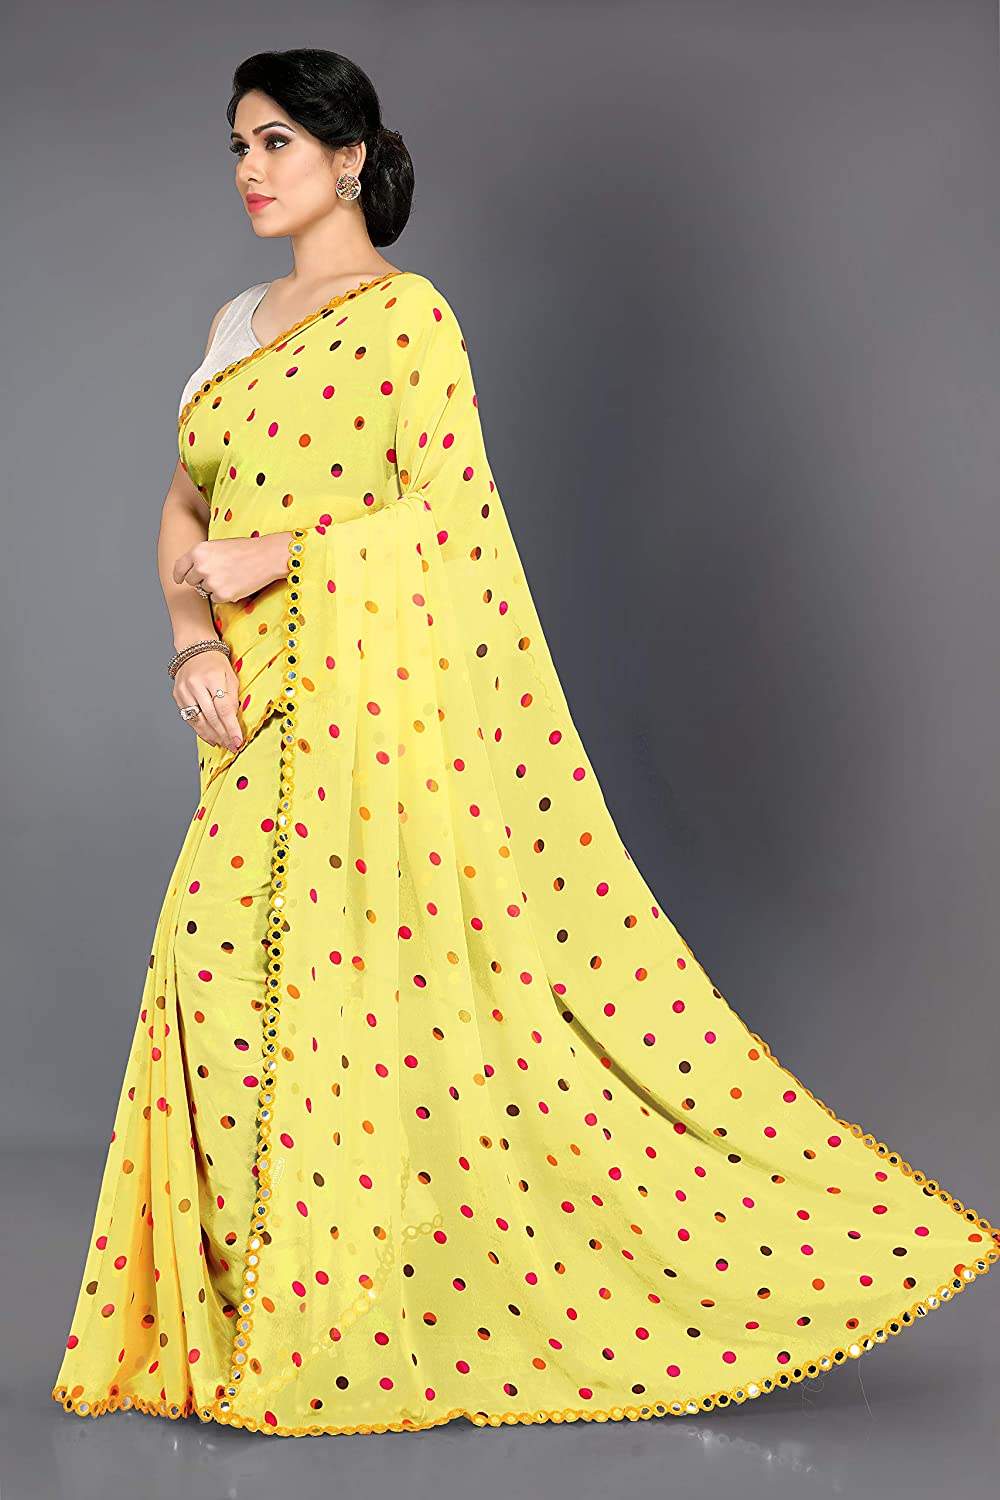 Mirchi Fashion Traditional Indian Fancy All Over Circular Patten Prints Saree for Women with & Mirror Lace Border & Blouse Piece Yellow